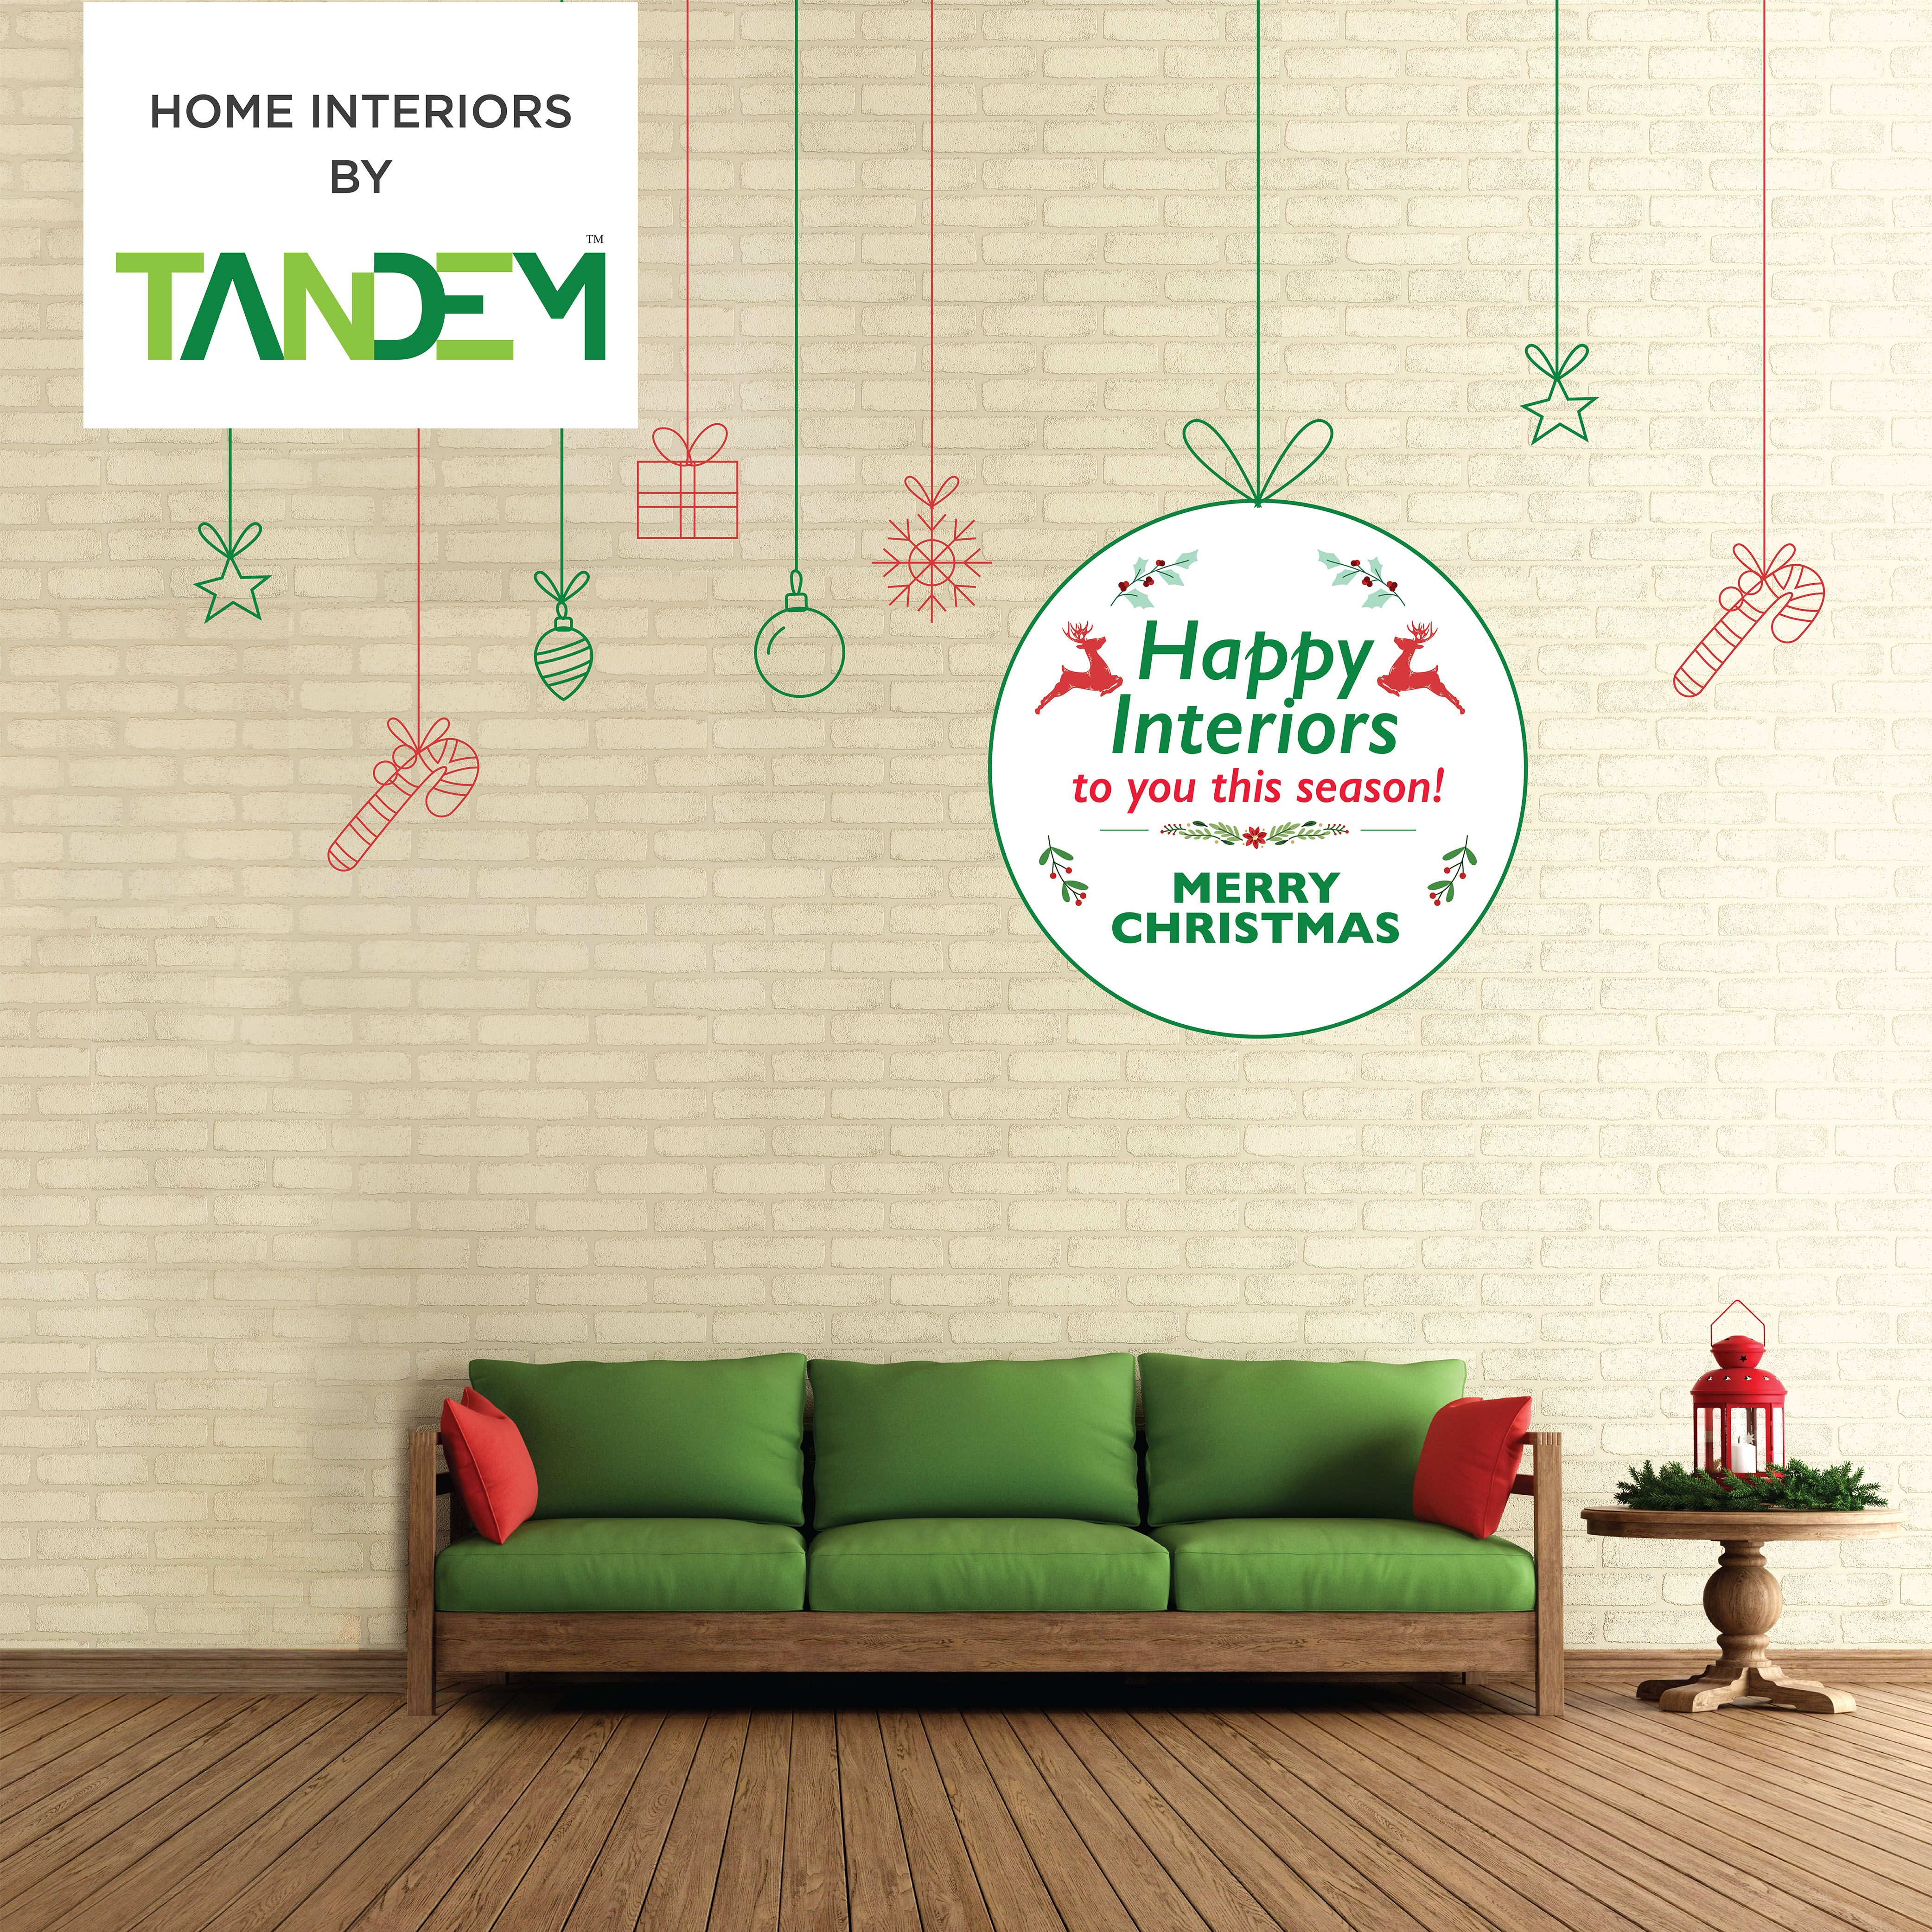 From The Tandem Family We Wish You A Joyous Christmas With